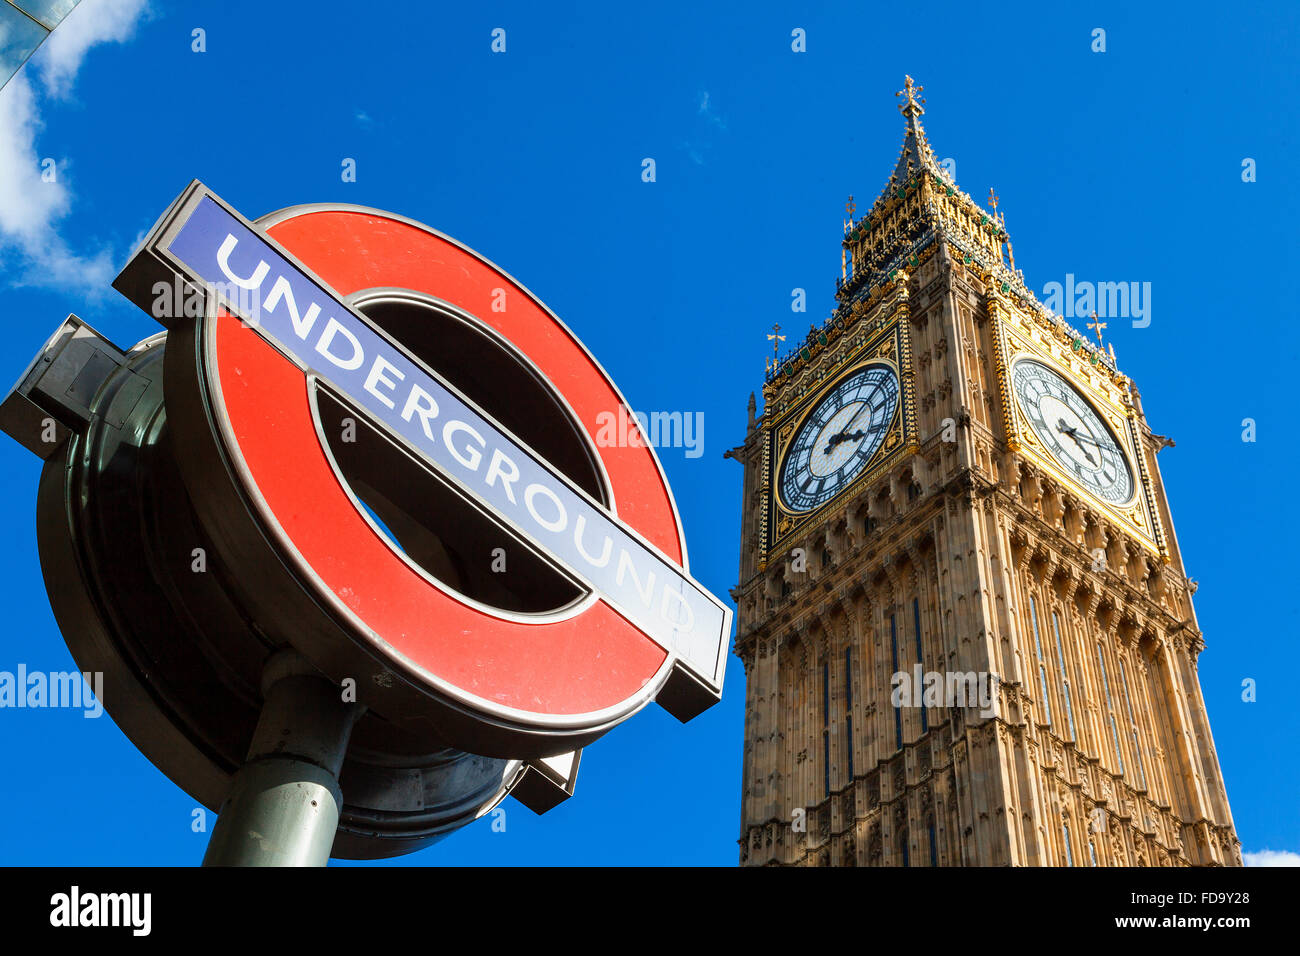 big ben bell stock photos u0026 big ben bell stock images alamy